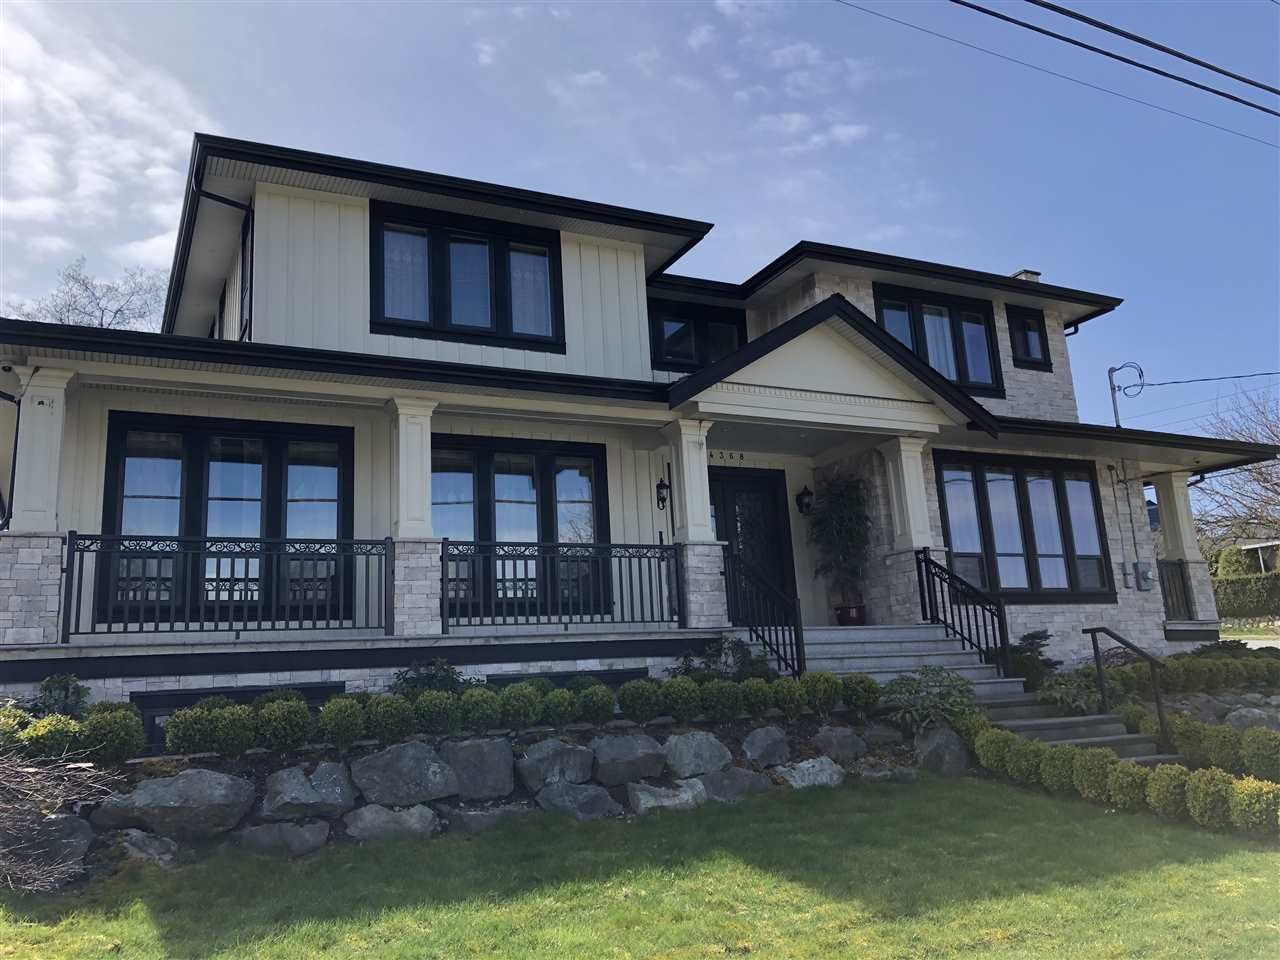 Main Photo: 4368 BURKE Street in Burnaby: Central Park BS House for sale (Burnaby South)  : MLS®# R2453724